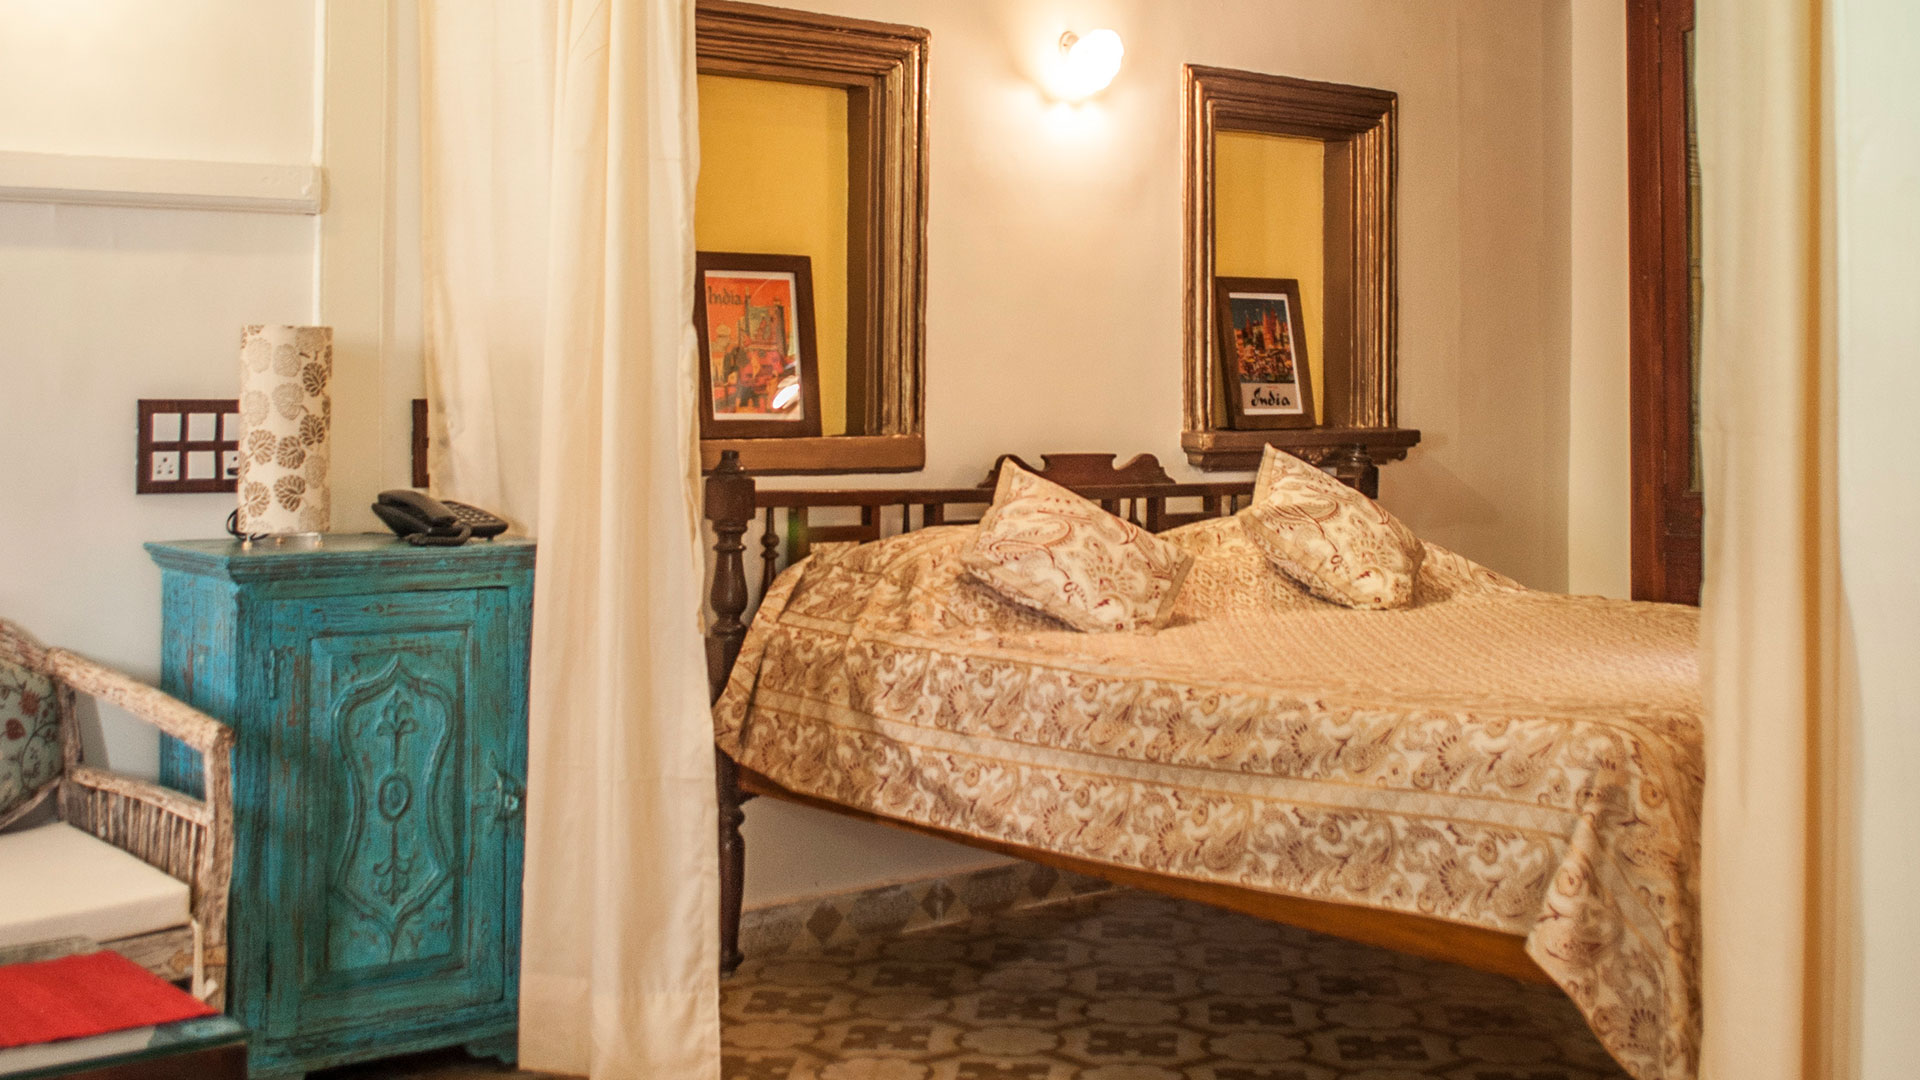 One of the rooms at the French Haveli | This concept of accommodation gives you the opportunity to experience the local community while you visit Ahmedabad. The mission behind the French Haveli is also to promote the local heritage by re-purposing a Historical buildings.